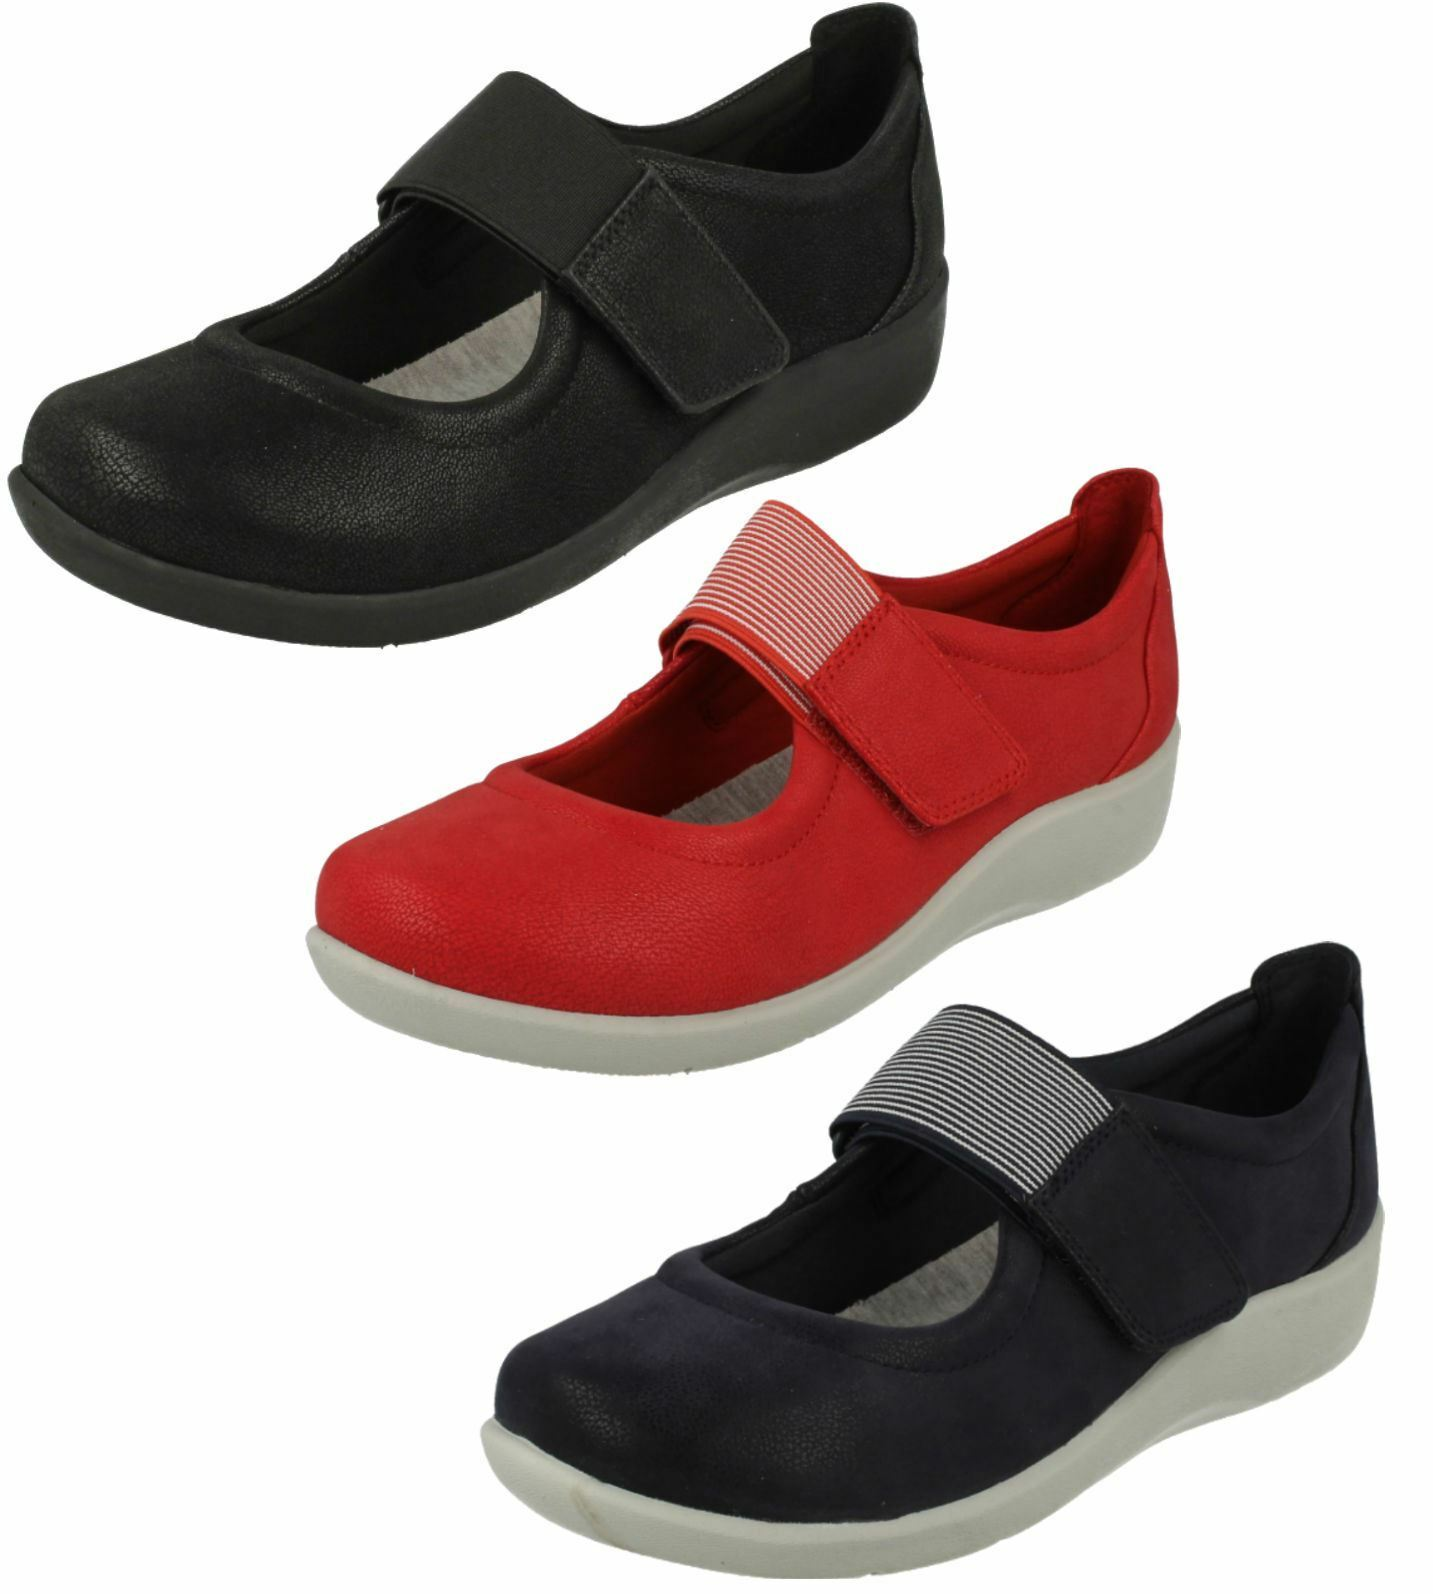 Femmes Clarks cloudsteppers Plates Casual chaussures-Sillian Cala